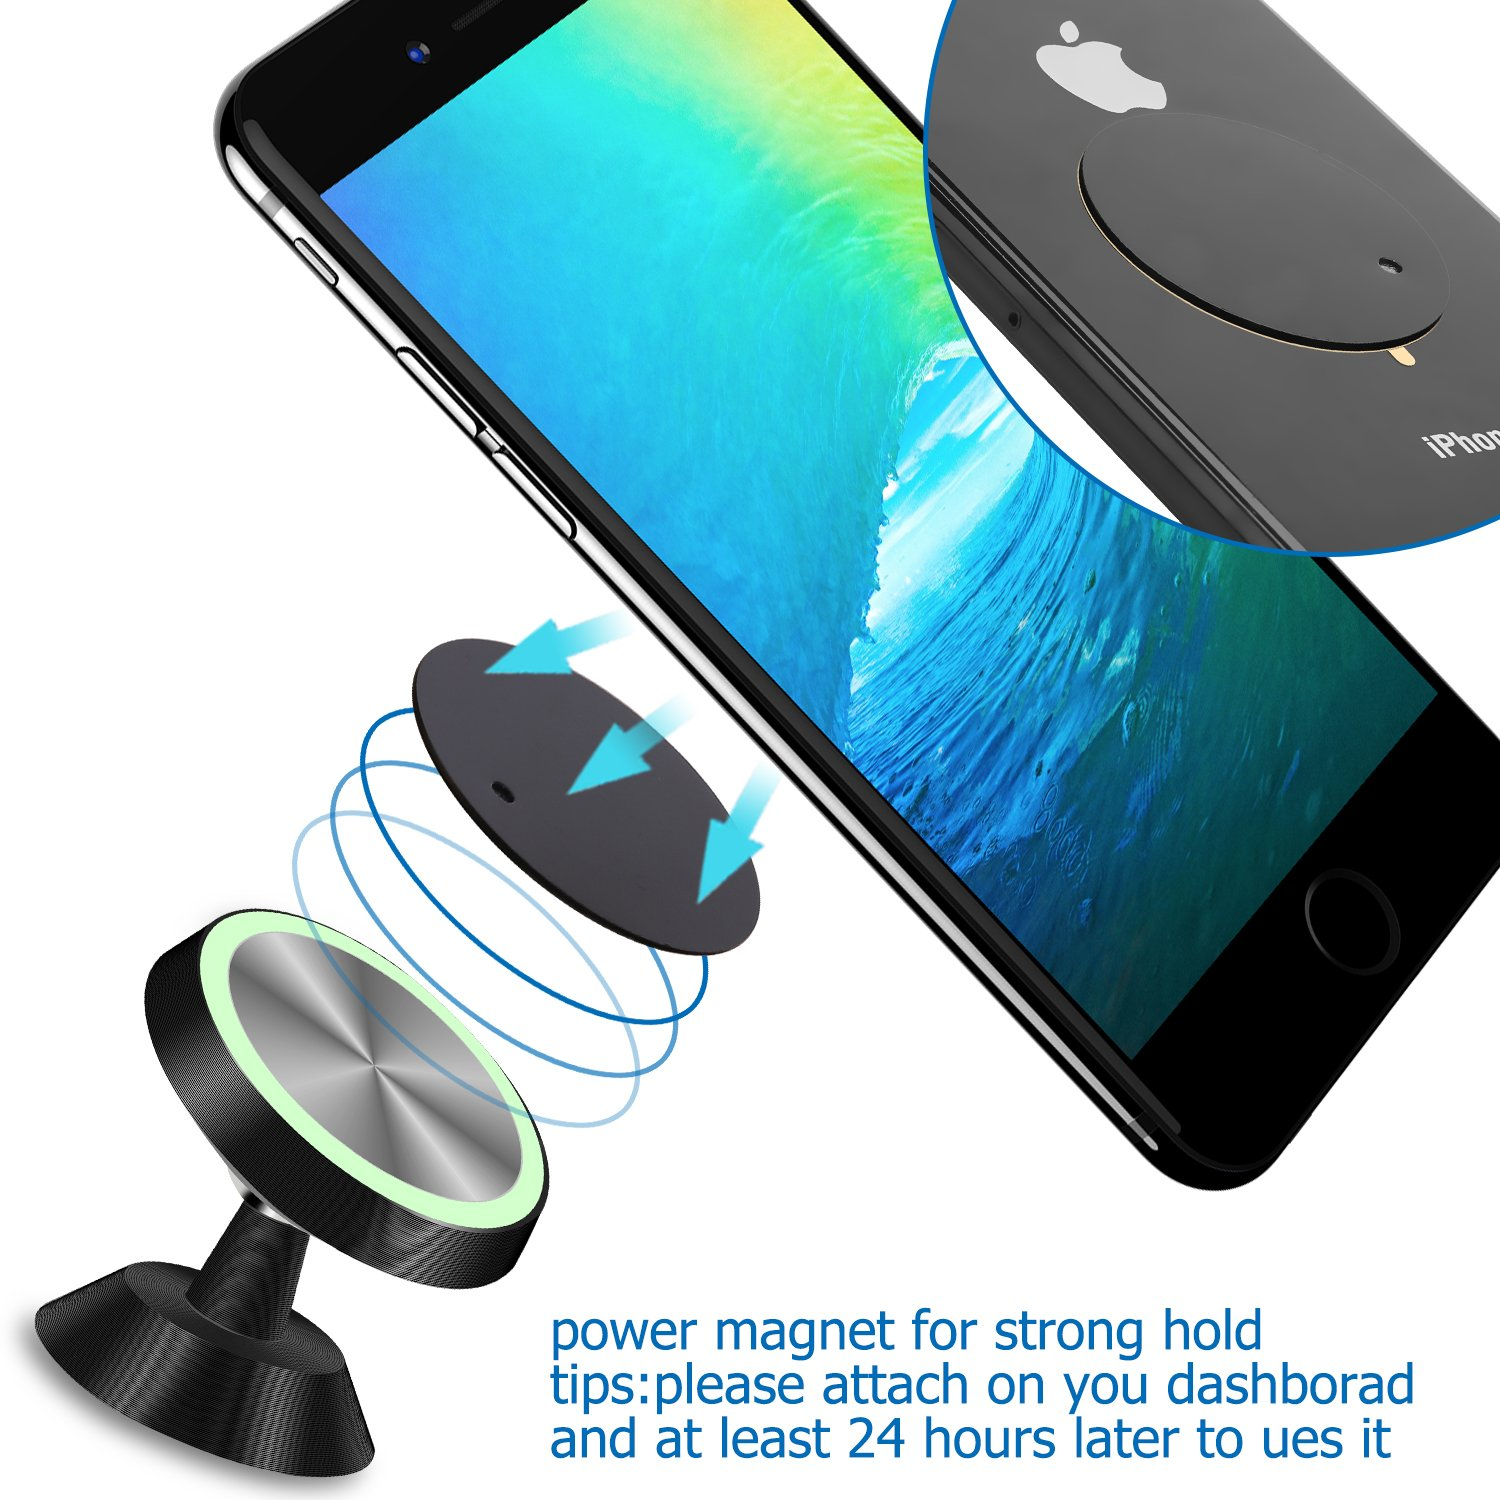 Magnetic Car Phone Mount,KENVENTY 360/°Universal Rotation Magnetic Luminous Car Phone Holder For Car Dashboard,Metal Mobile Phone Holder For iPhone Android Smartphones and more Kenventy Factory 4351524944 Samsung